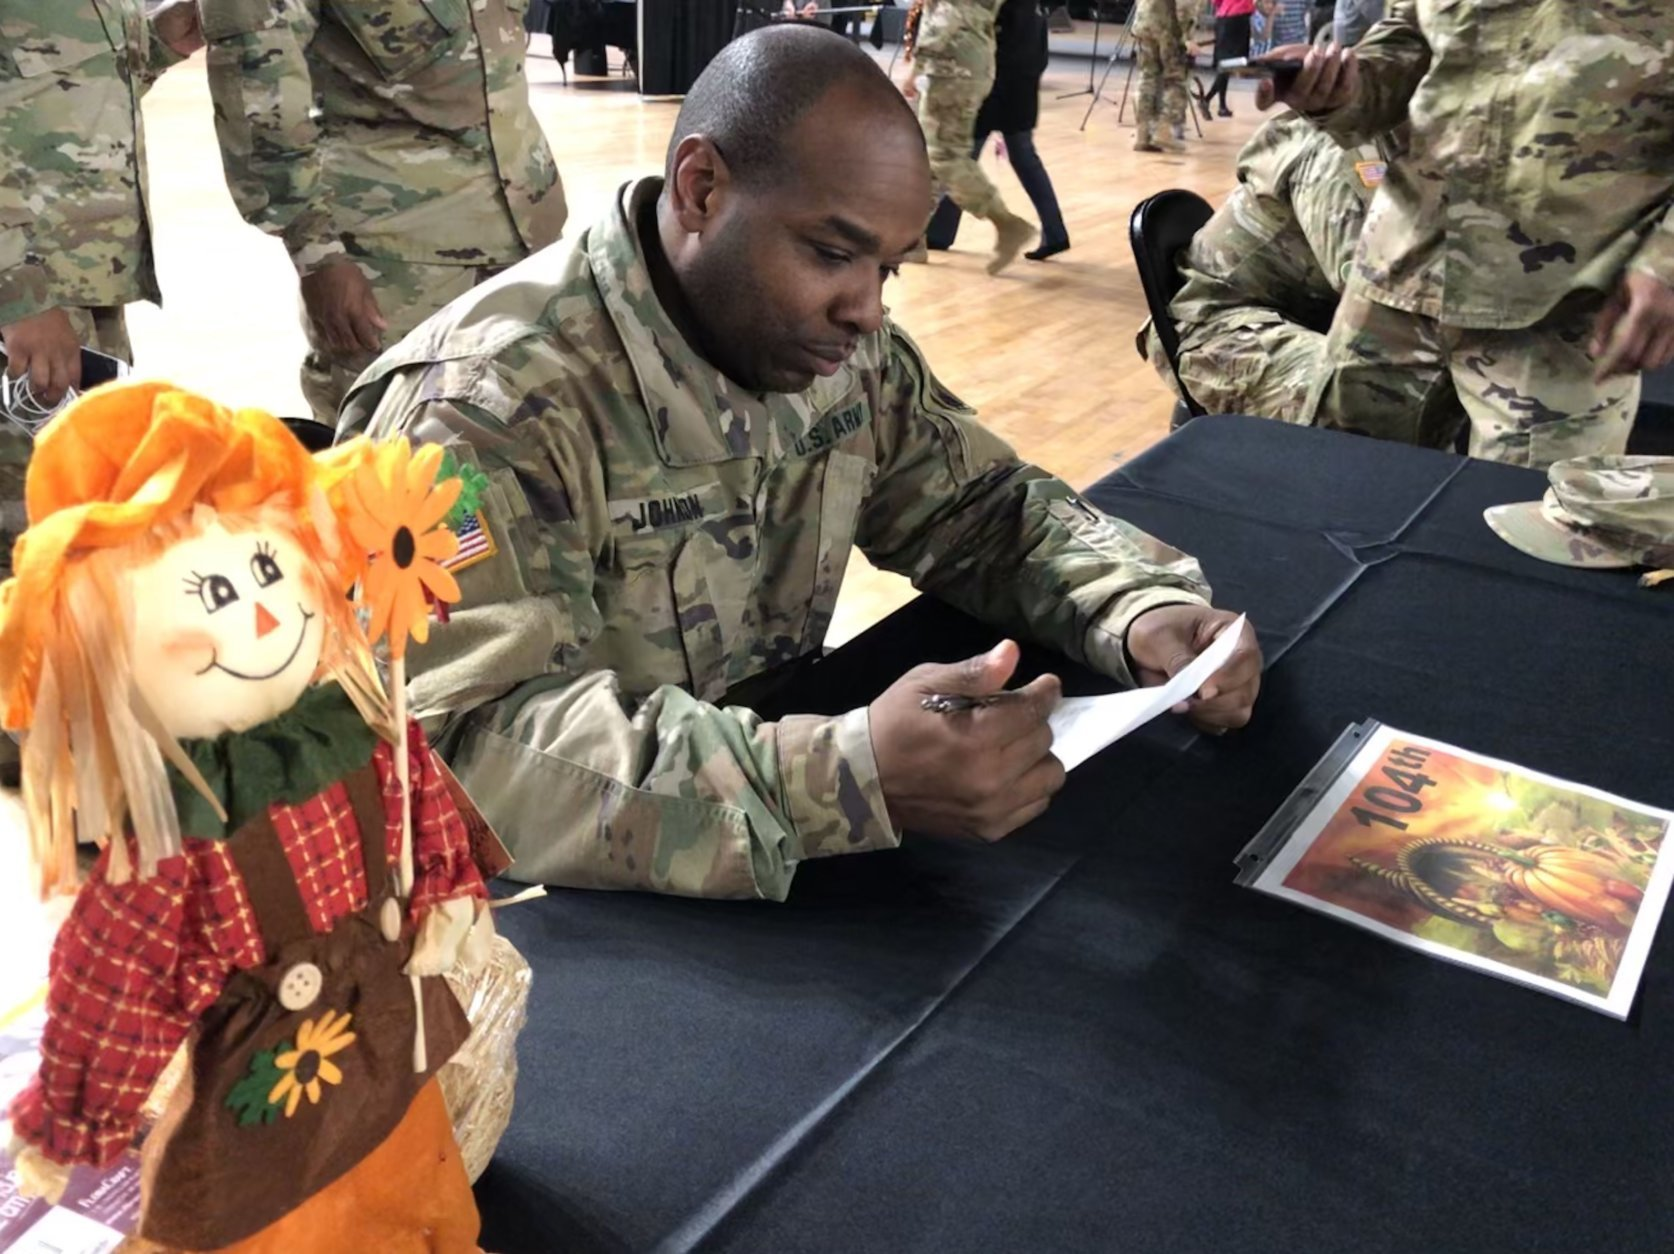 "Sgt. 1st Class Earl Johnson of the 104th Maintenance Company said of seeing people give back to military members who serve the community: ""It's uplifting, and it's another reason for me to give thanks during the holidays."" (WTOP/Kristi King)"